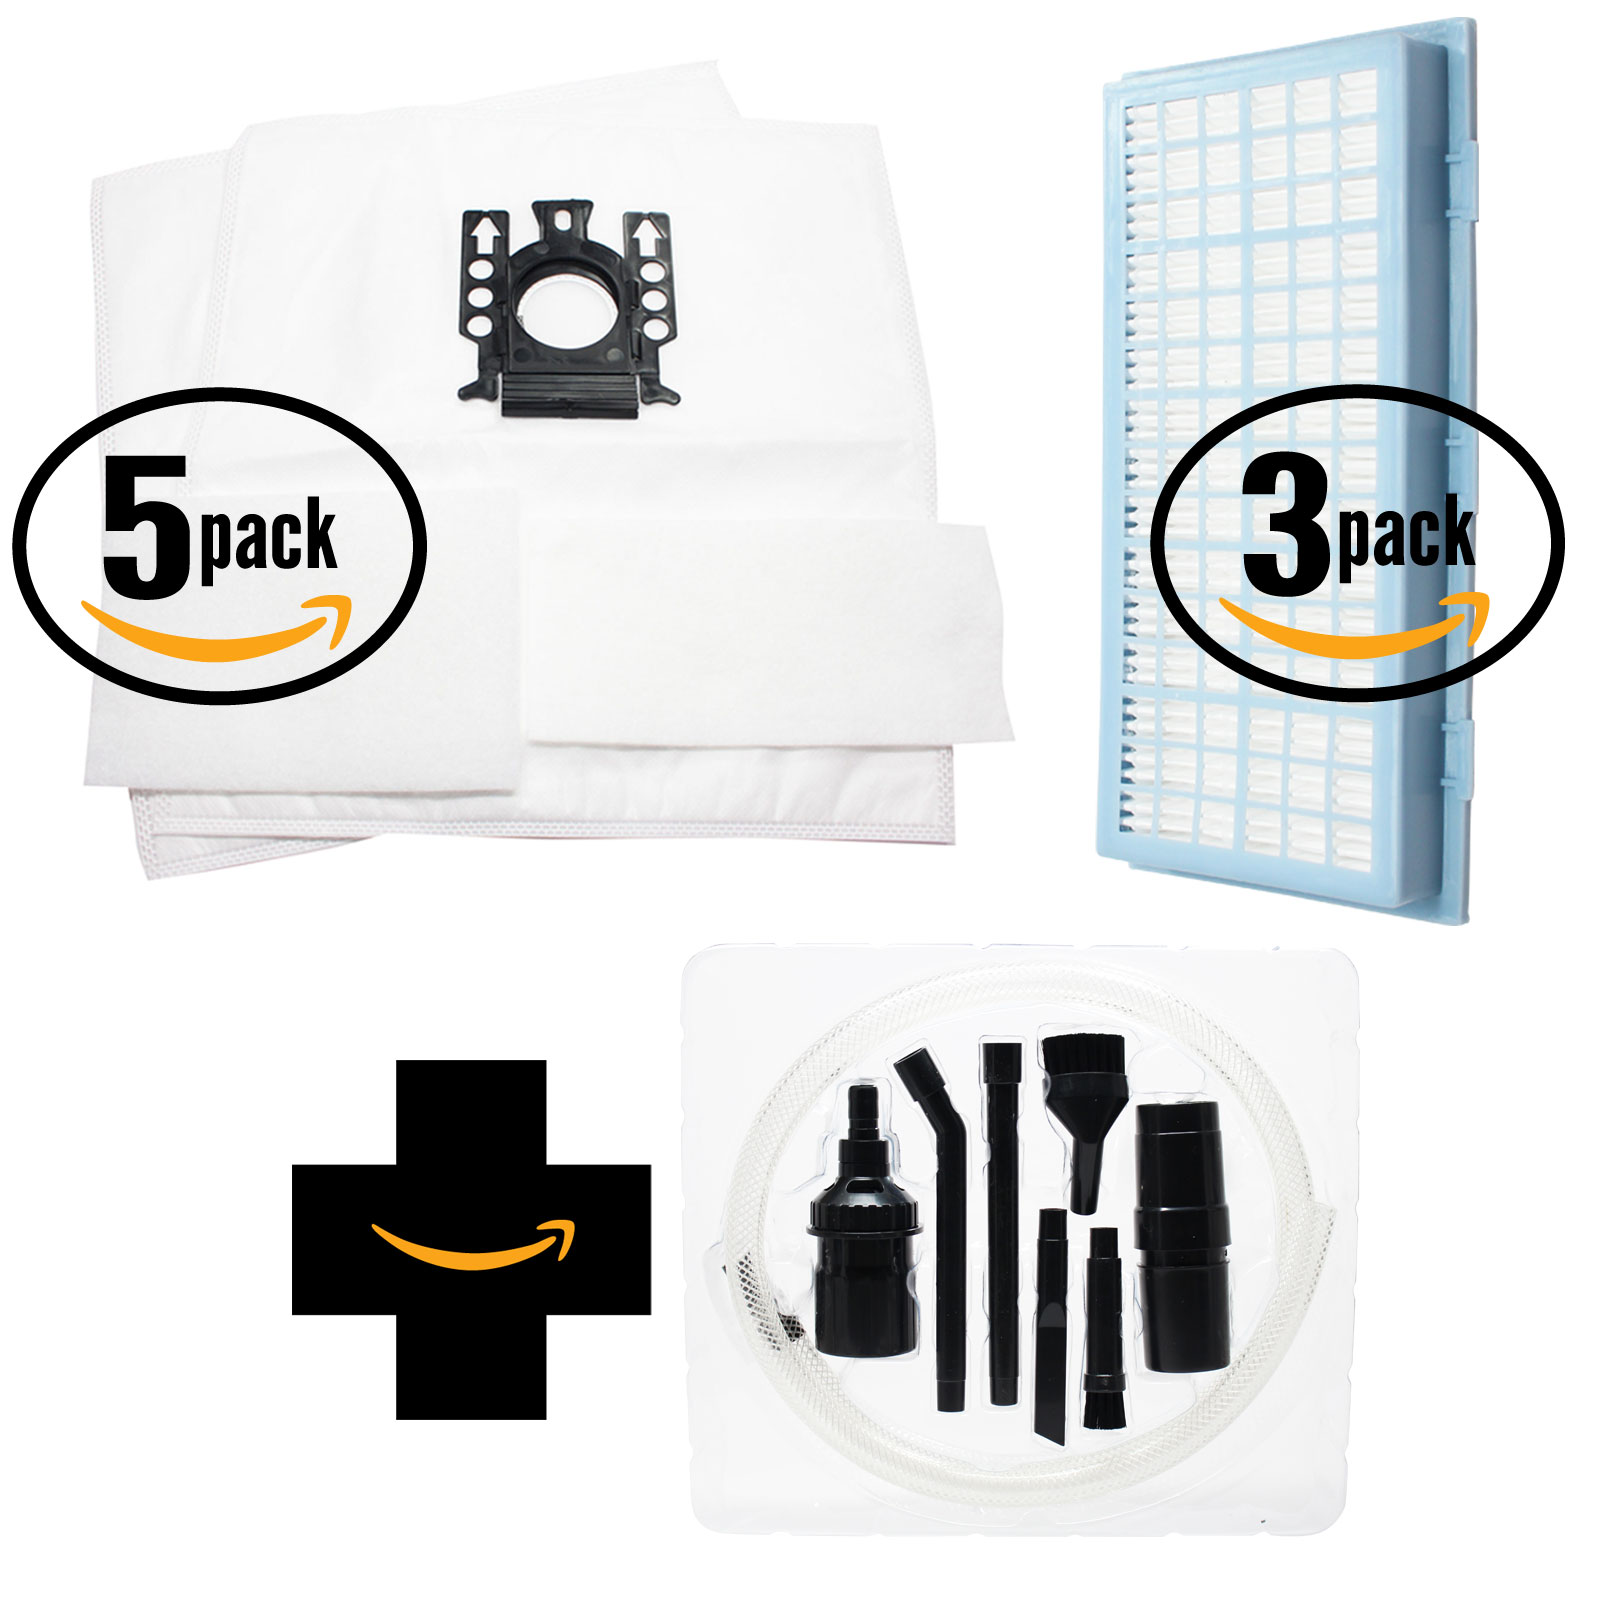 10 Replacement Miele S401i Vacuum Bags, 10 Micro Filters & 3 HEPA Filter with 7-Piece Micro Vacuum Attachment Kit - Compatible Miele Type GN Bags, Micro Filters & SF-AH 30, SF-HA 30, AH30 Filter